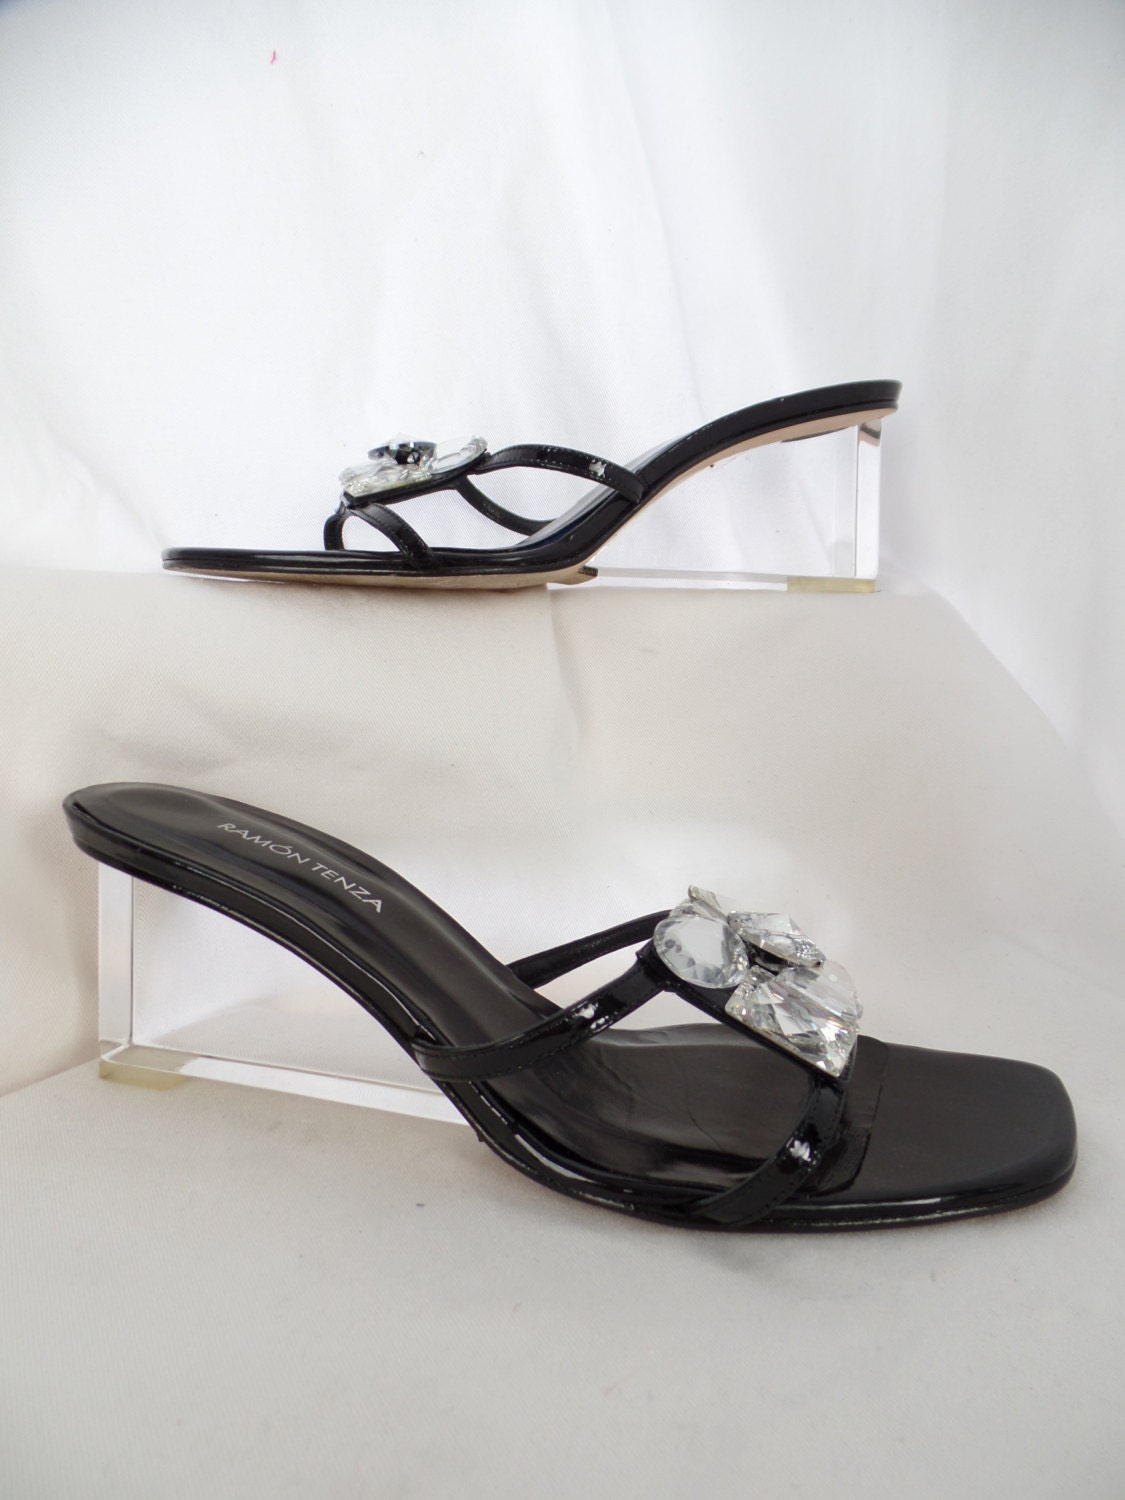 555918dc7415 RAMON TENZA clear Lucite wedge heel gem embellished sandals